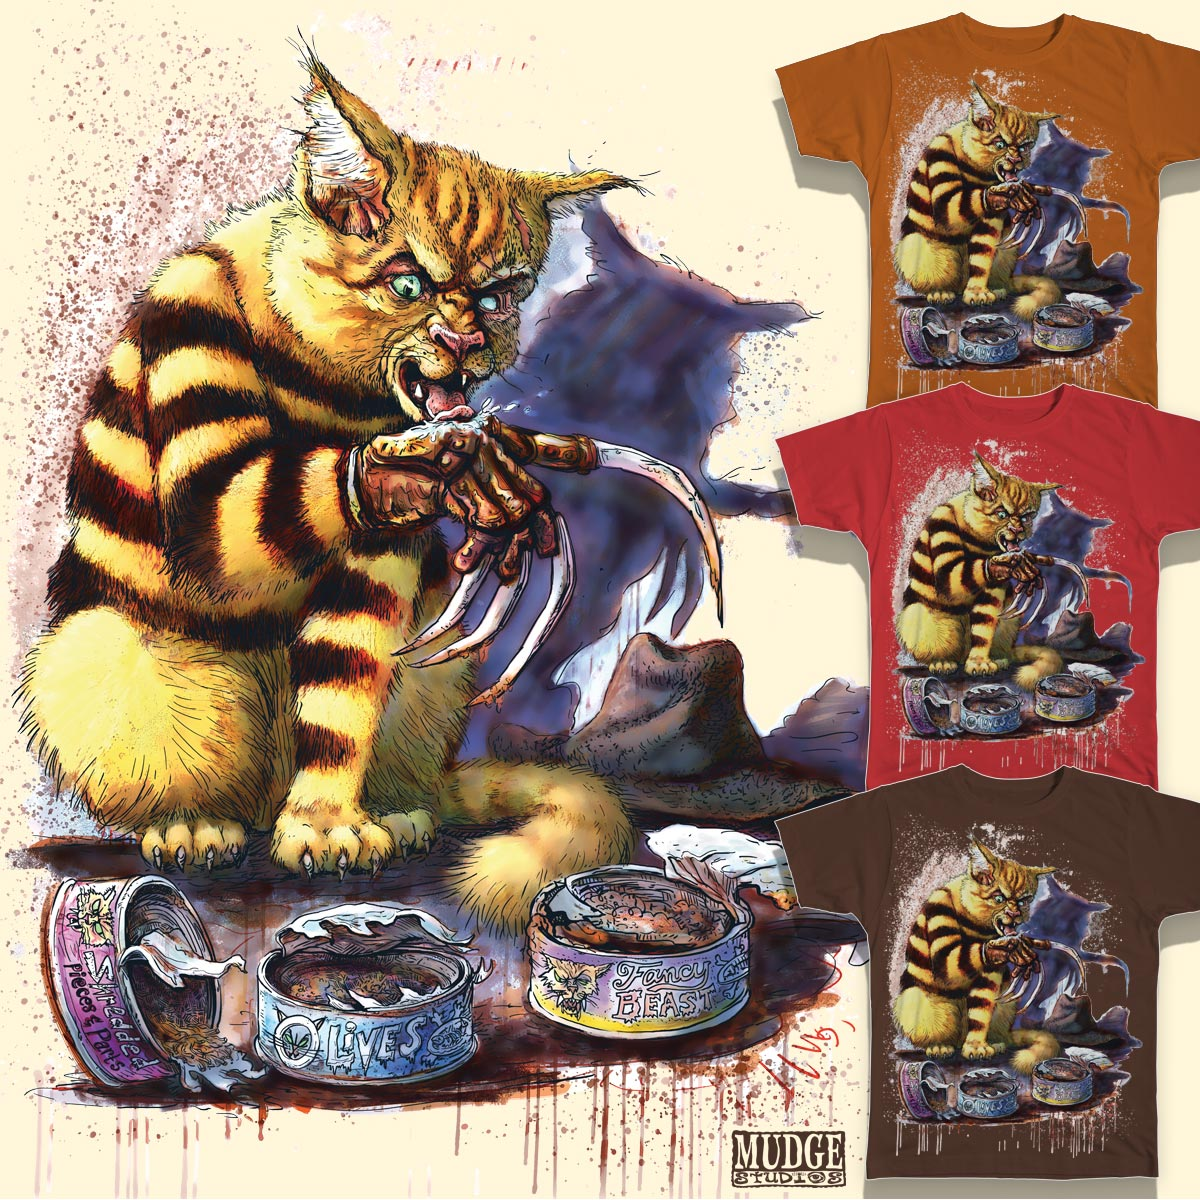 Score freddy cougar by mudgestudios on threadless - Pictures of freddy cougar ...